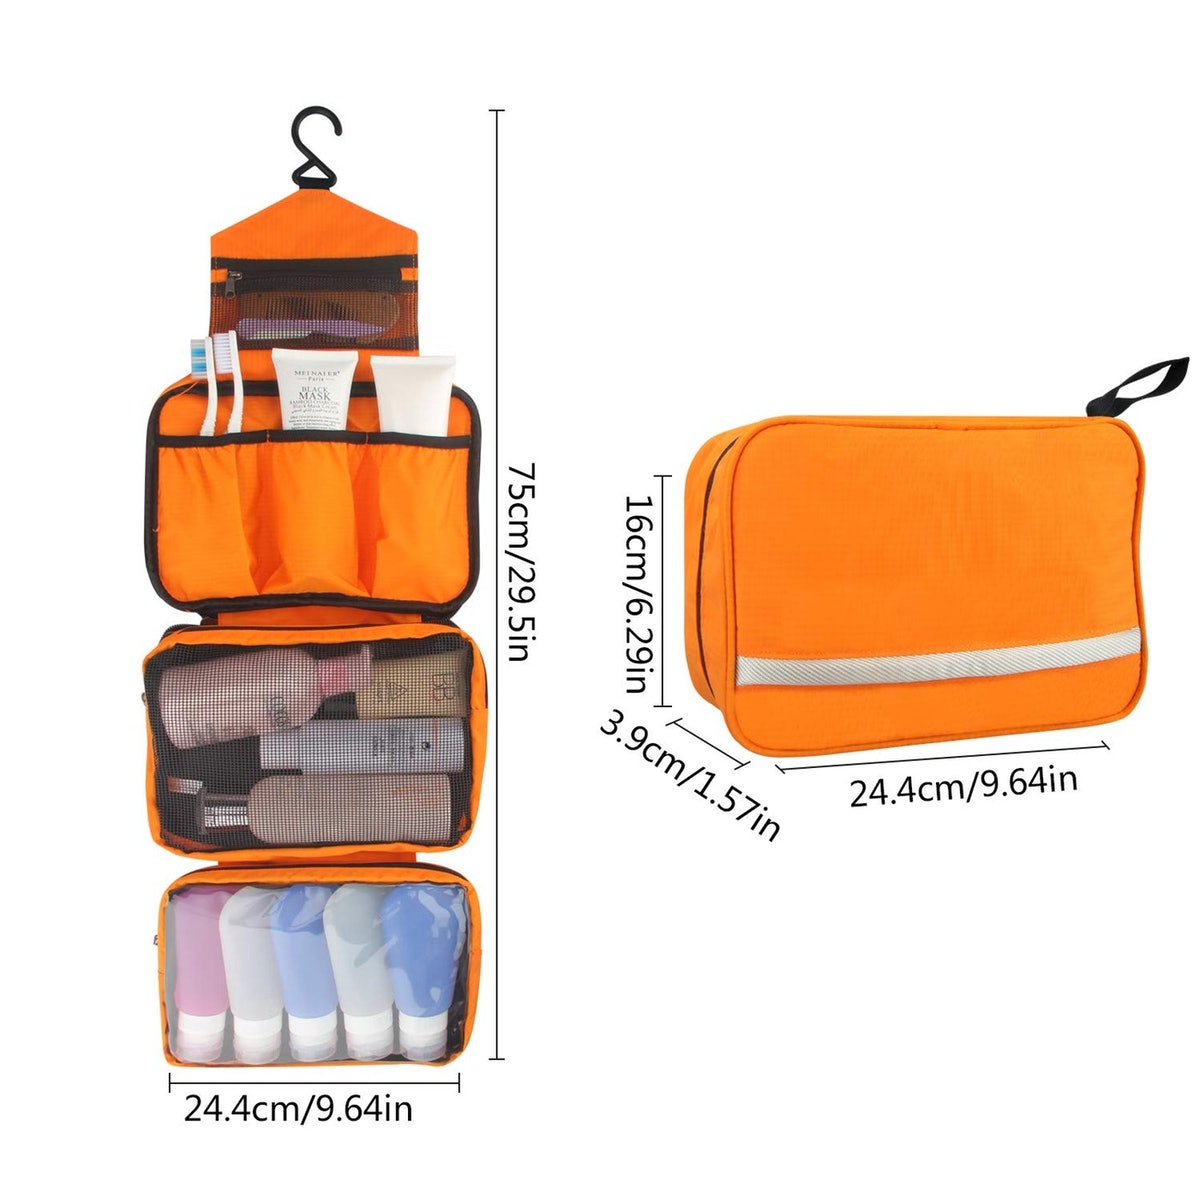 Relavel Compact Hanging Hygiene Purse